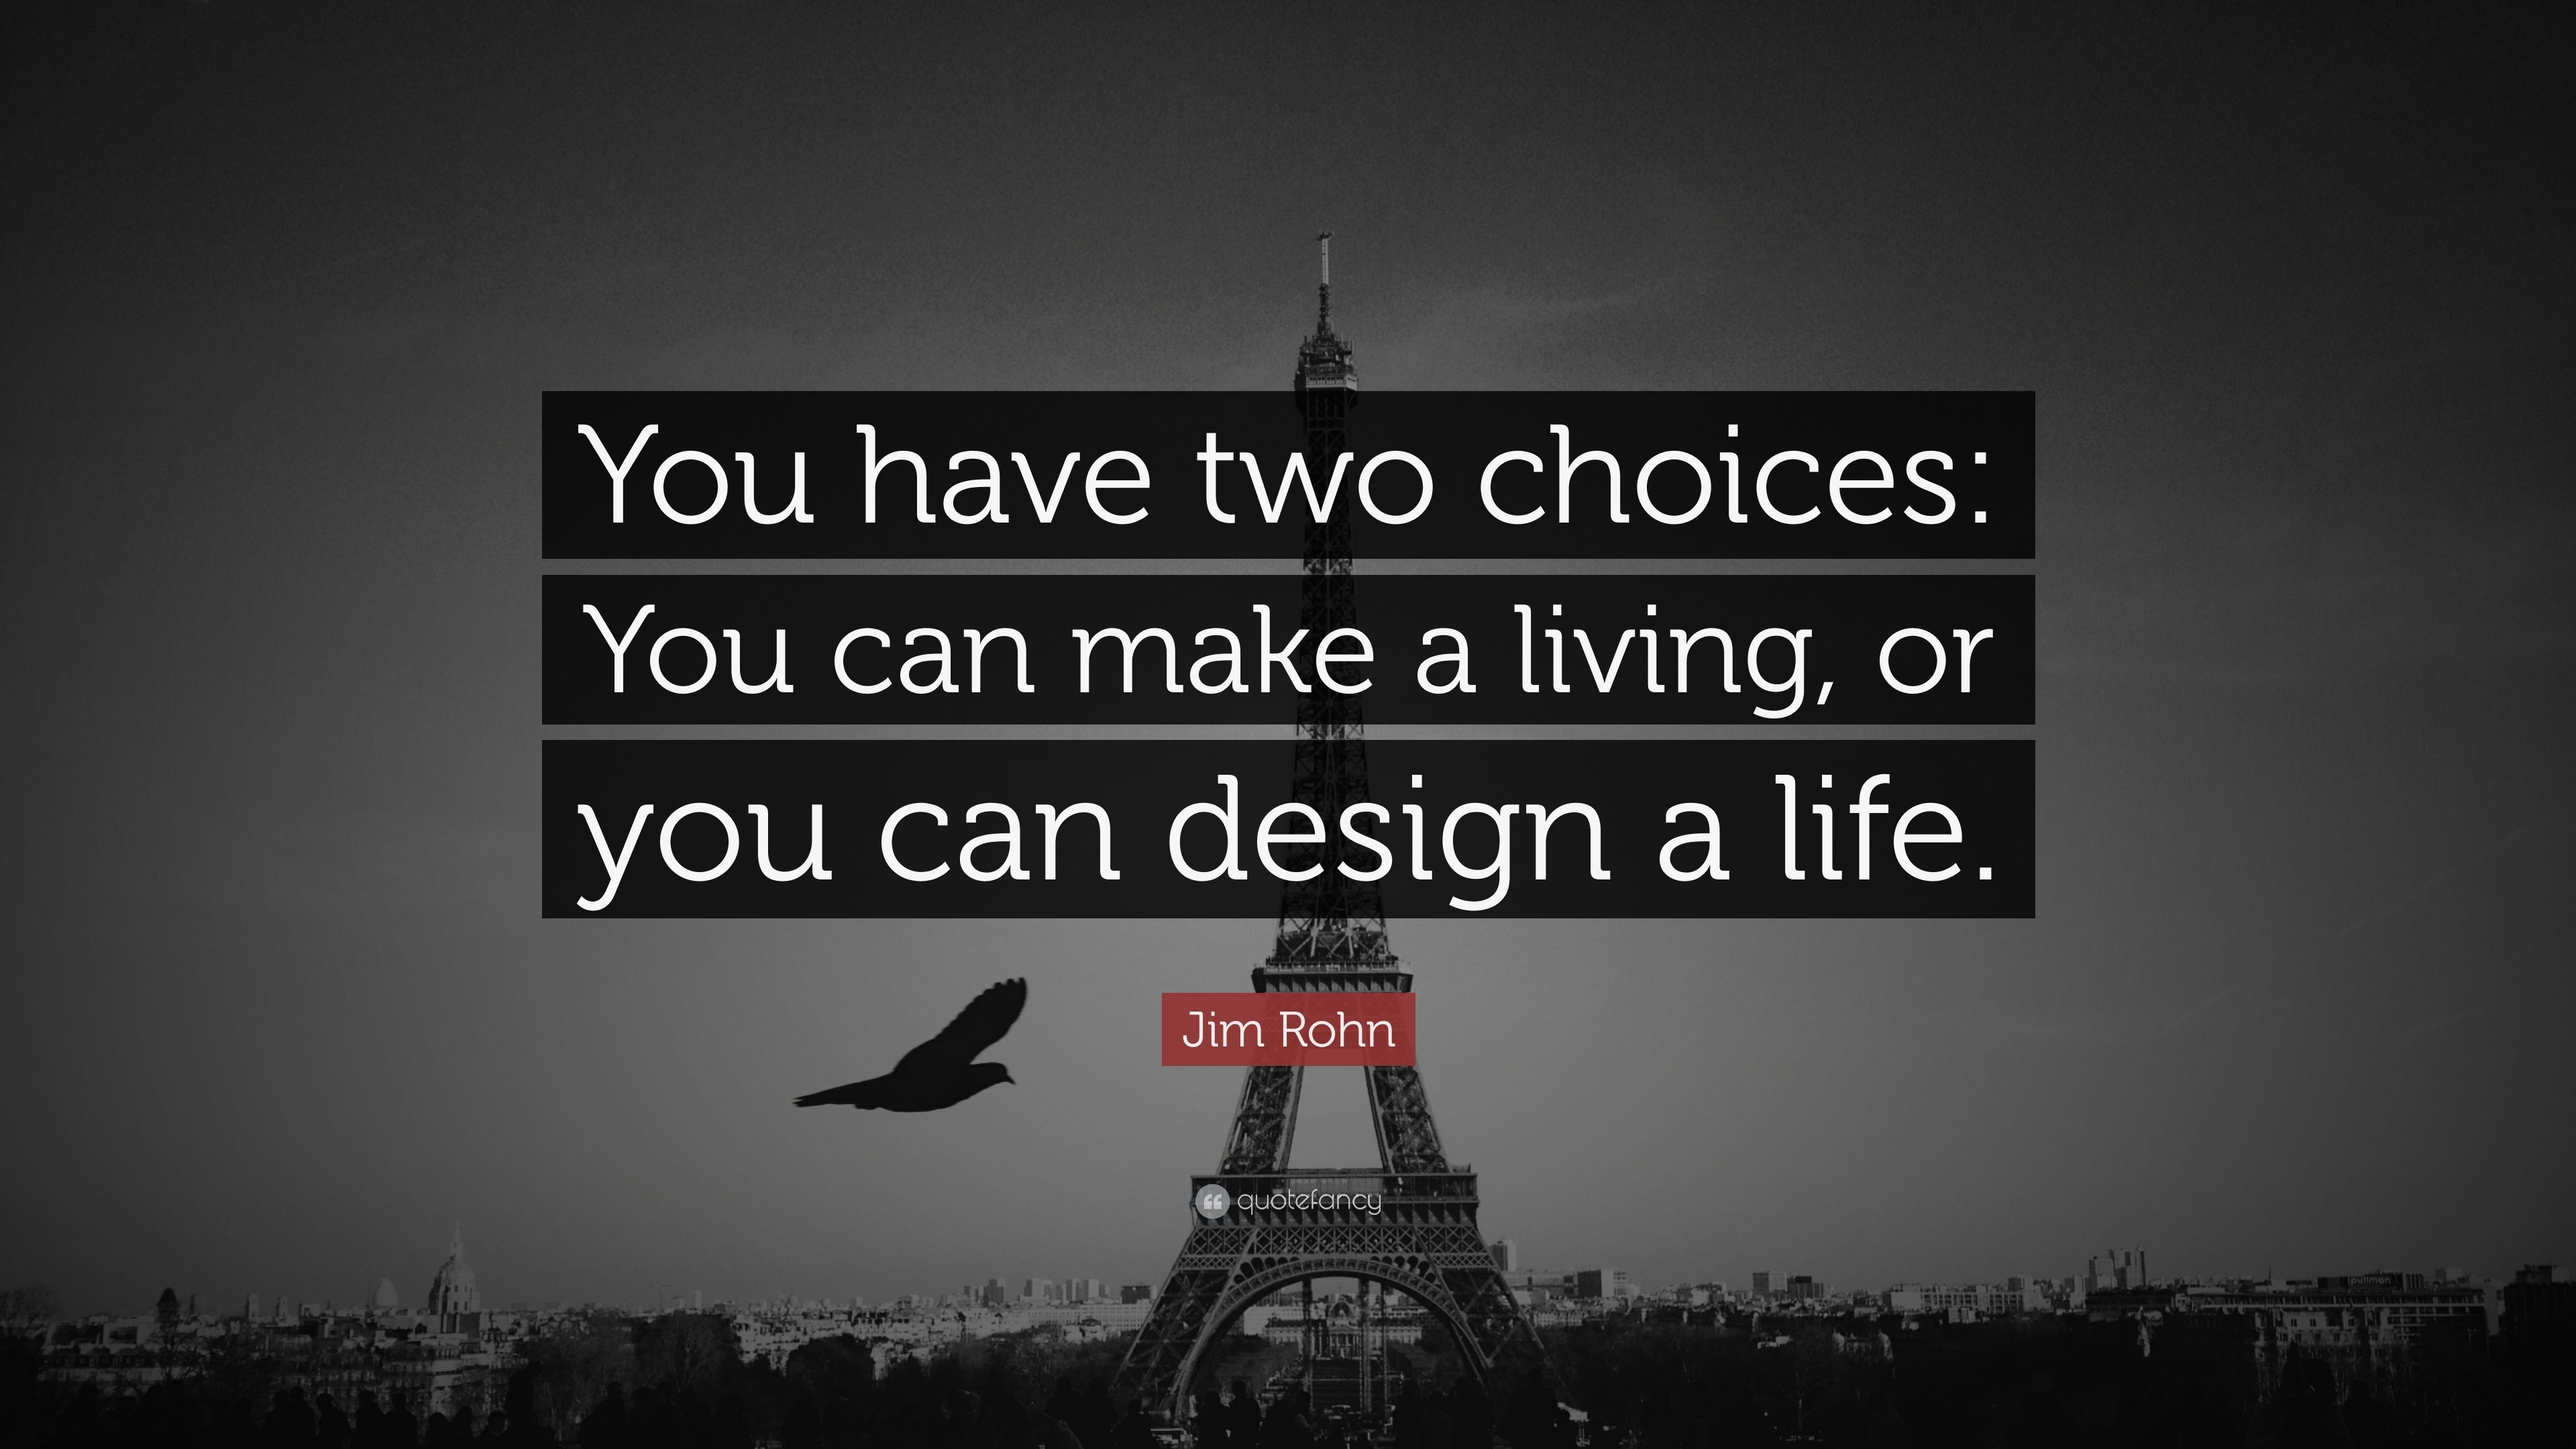 Jim Rohn Quotes The Cs Of Life Choices Chances Changes You Must Make A Choice  3D